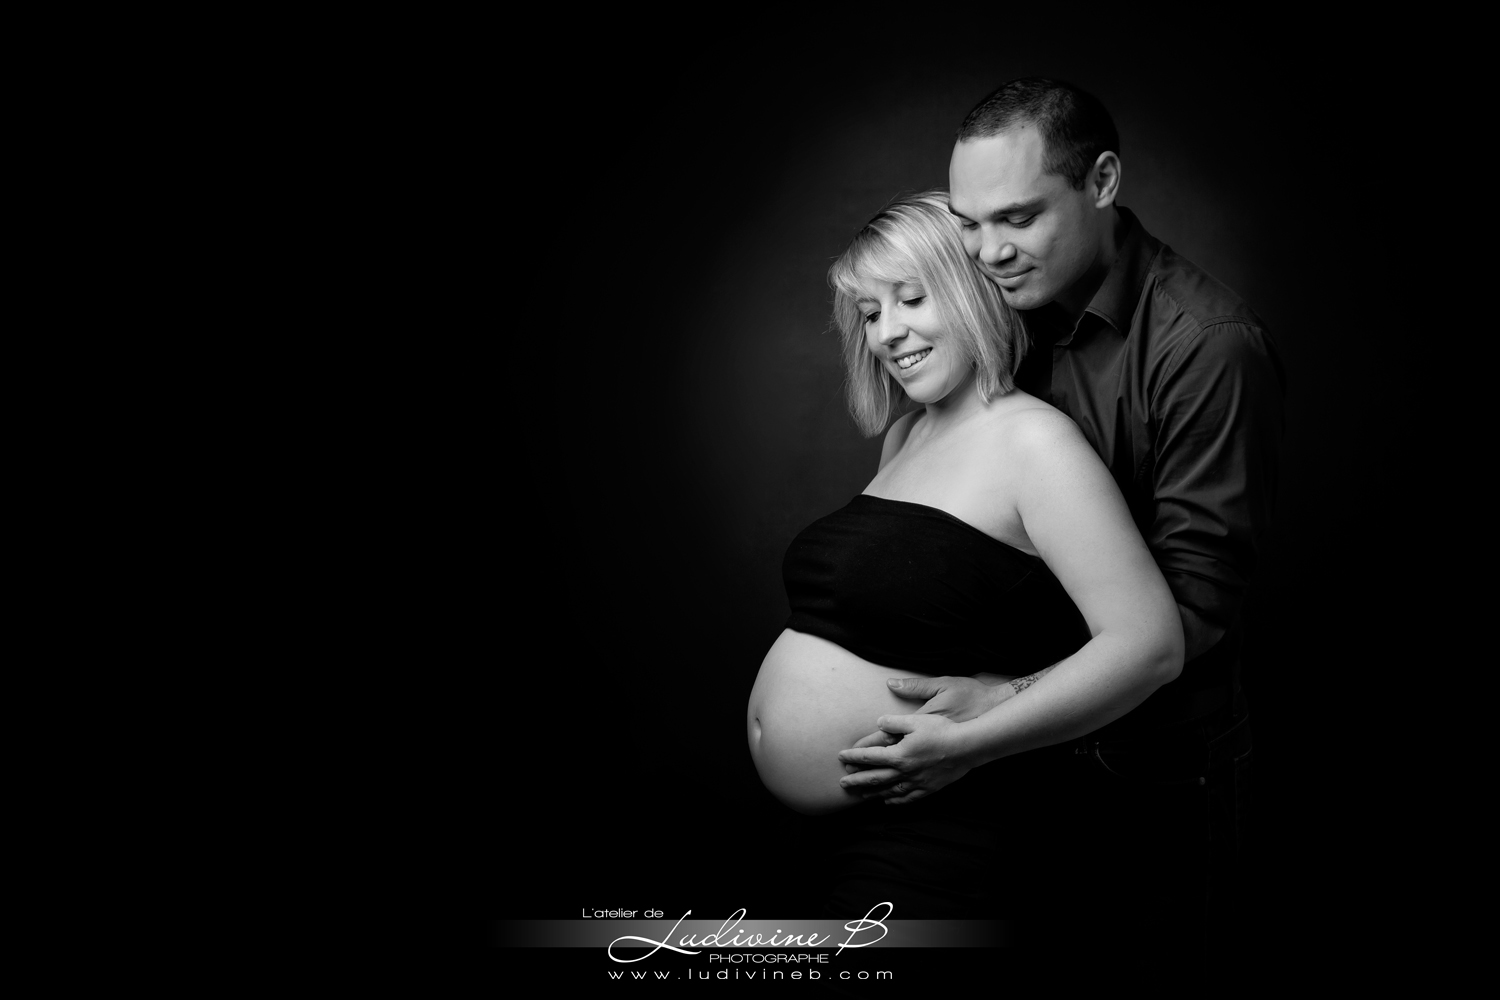 latelier_de_ludivineb_portrait_studio_photographe_012 nb